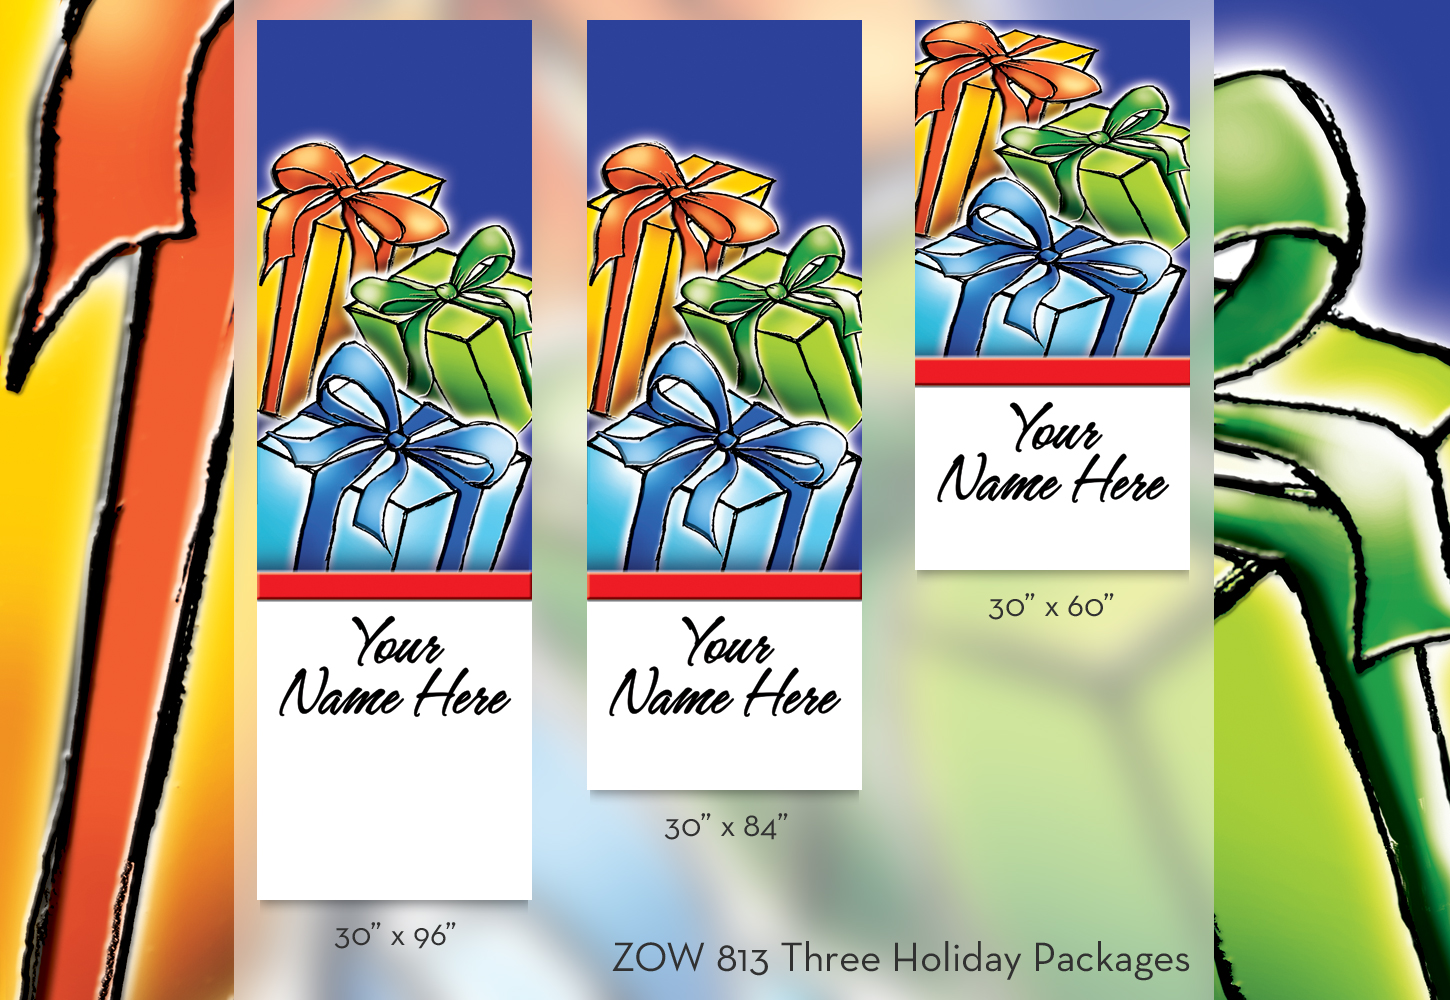 ZOW 813 Three Holiday Packages